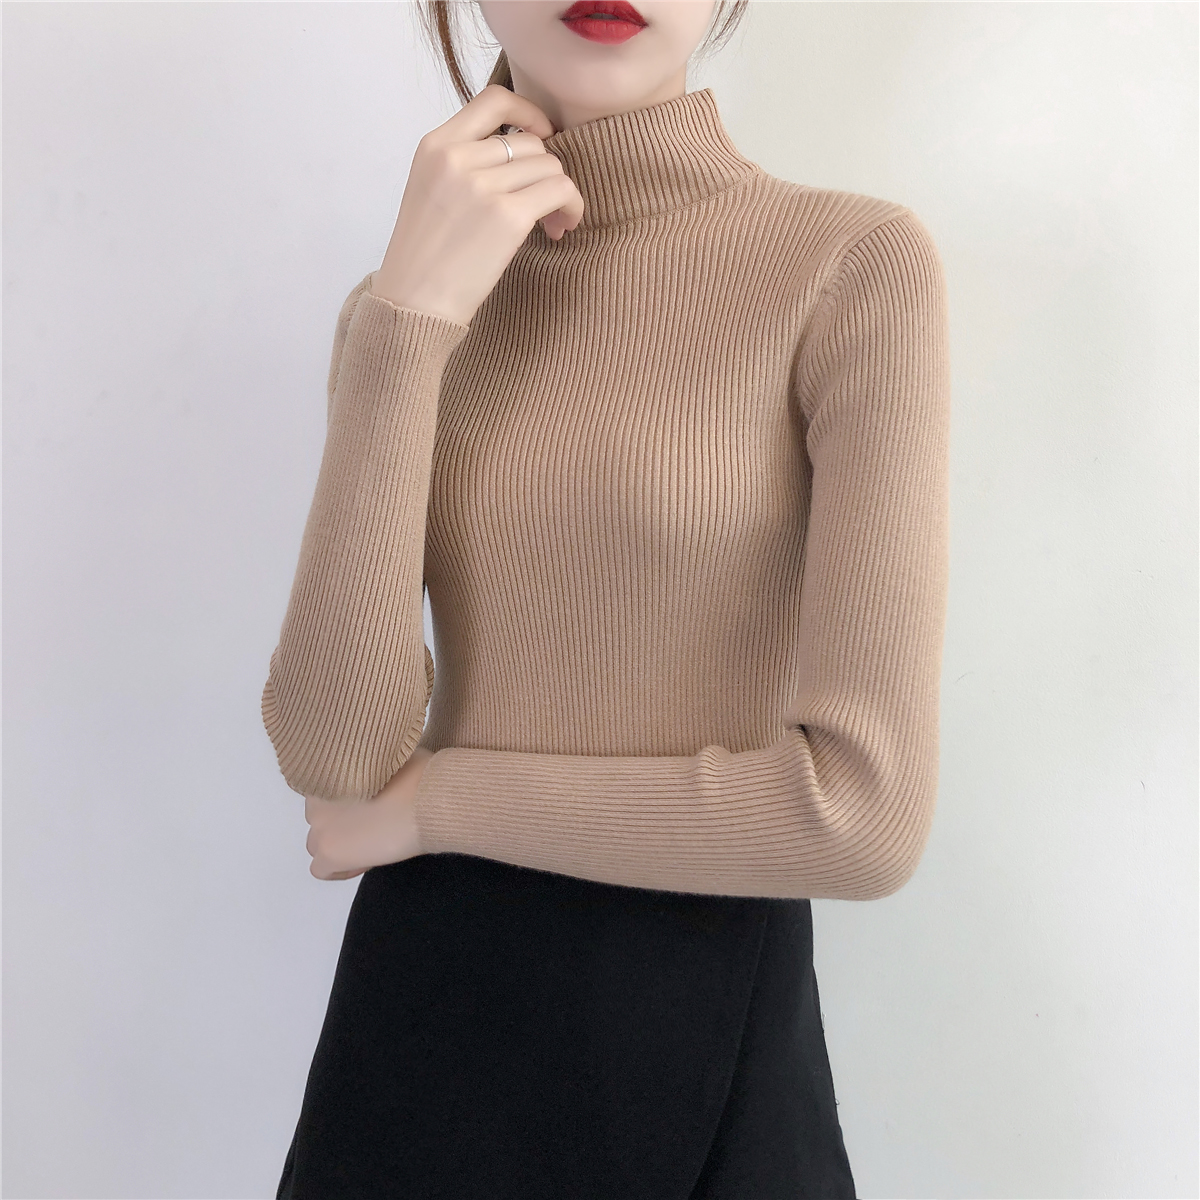 Winter Thick Turtleneck Collar High Elasticity Casual Pullovers Female Knitted Women Sweater Black White